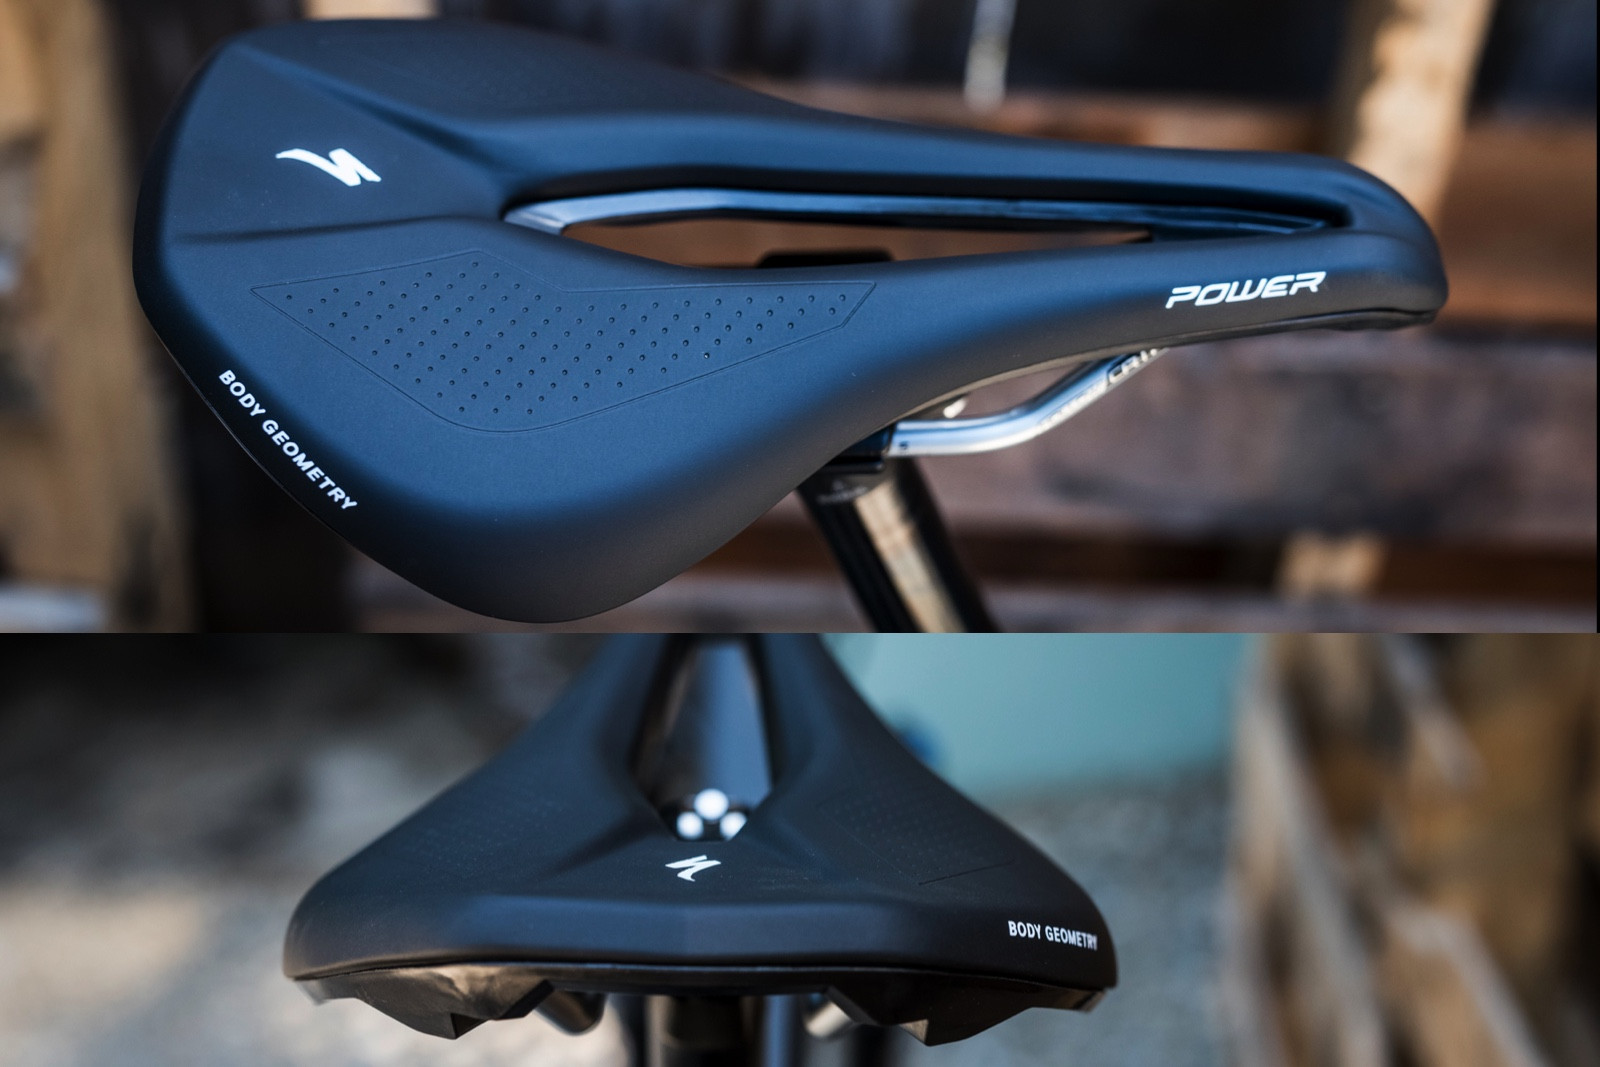 Specialized has a very different take on saddles these days.  The Power Comp.  Shorter and wider with a great deal of relief in the center.  First impressions are amazing.